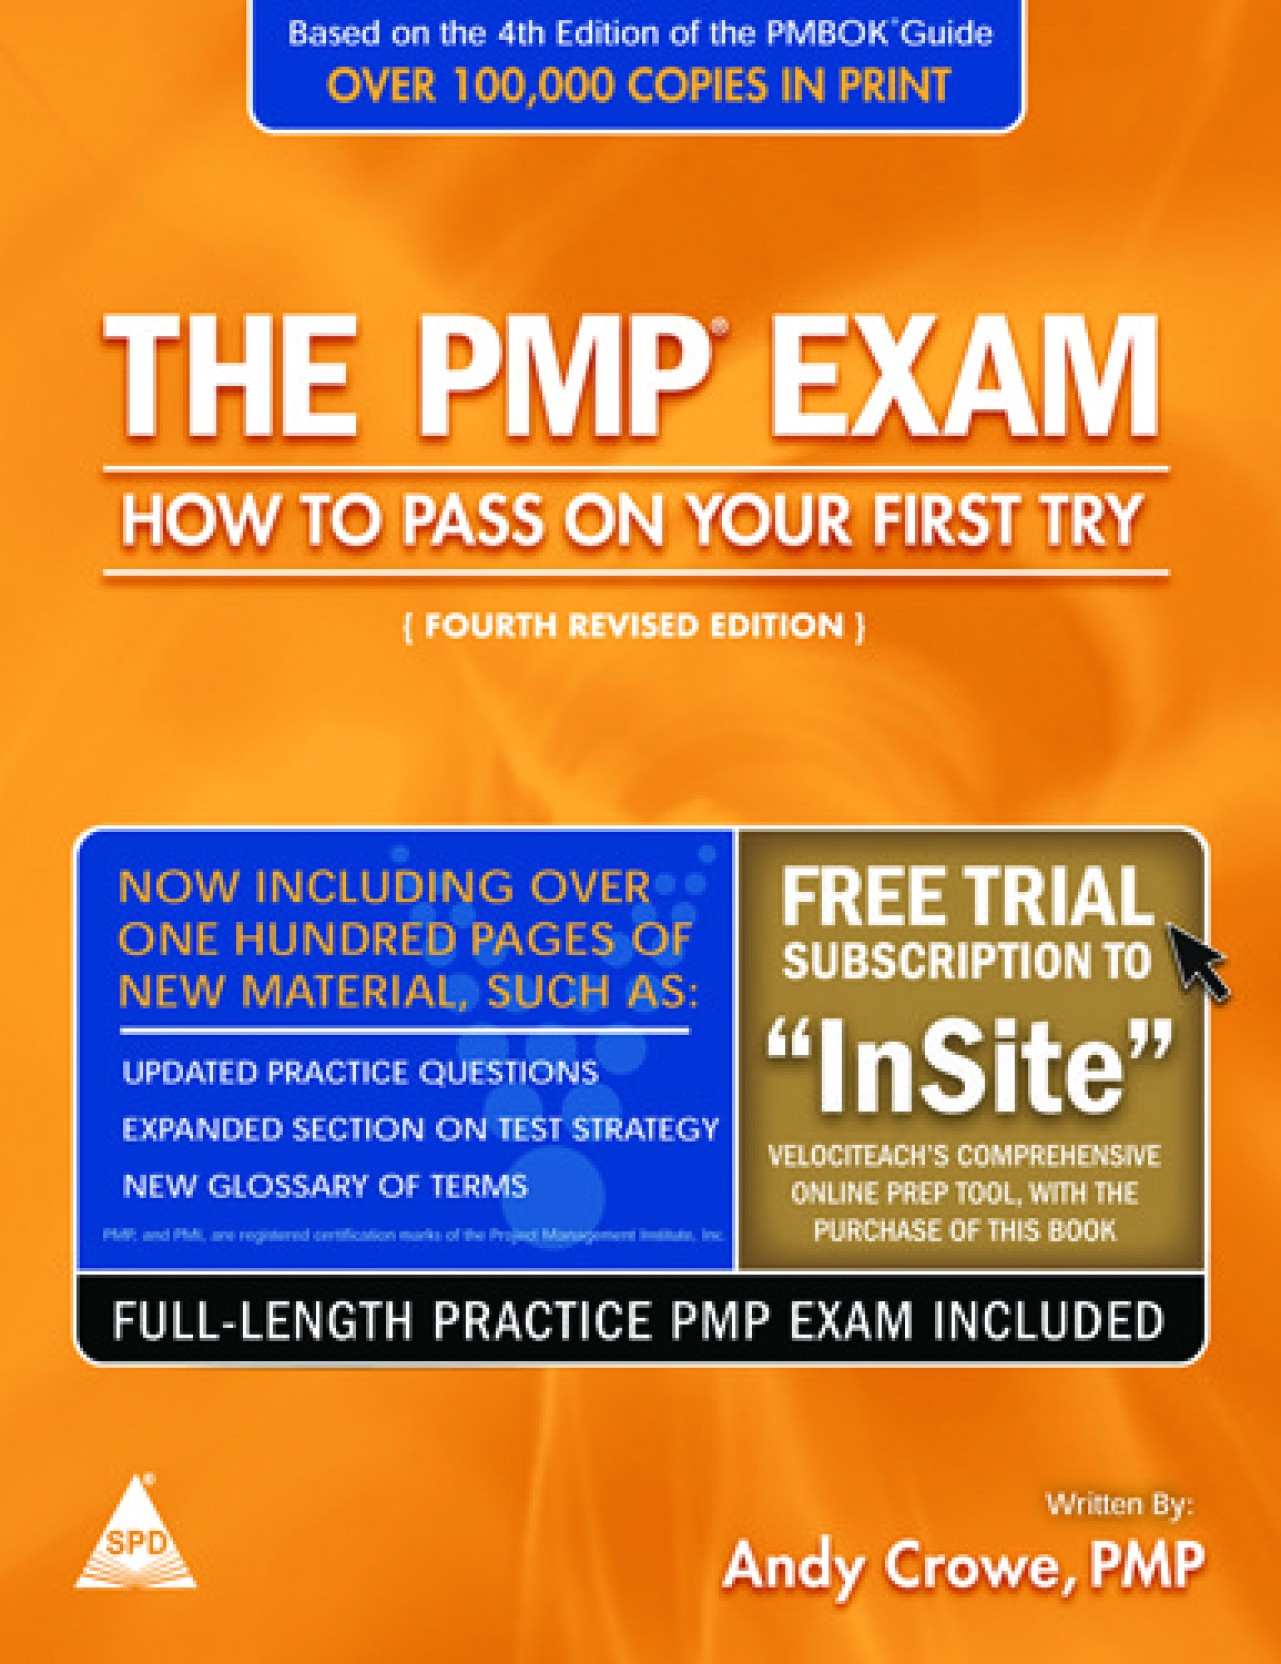 The PMP Exam : How to Pass On Your First Try 4th Edition. Share